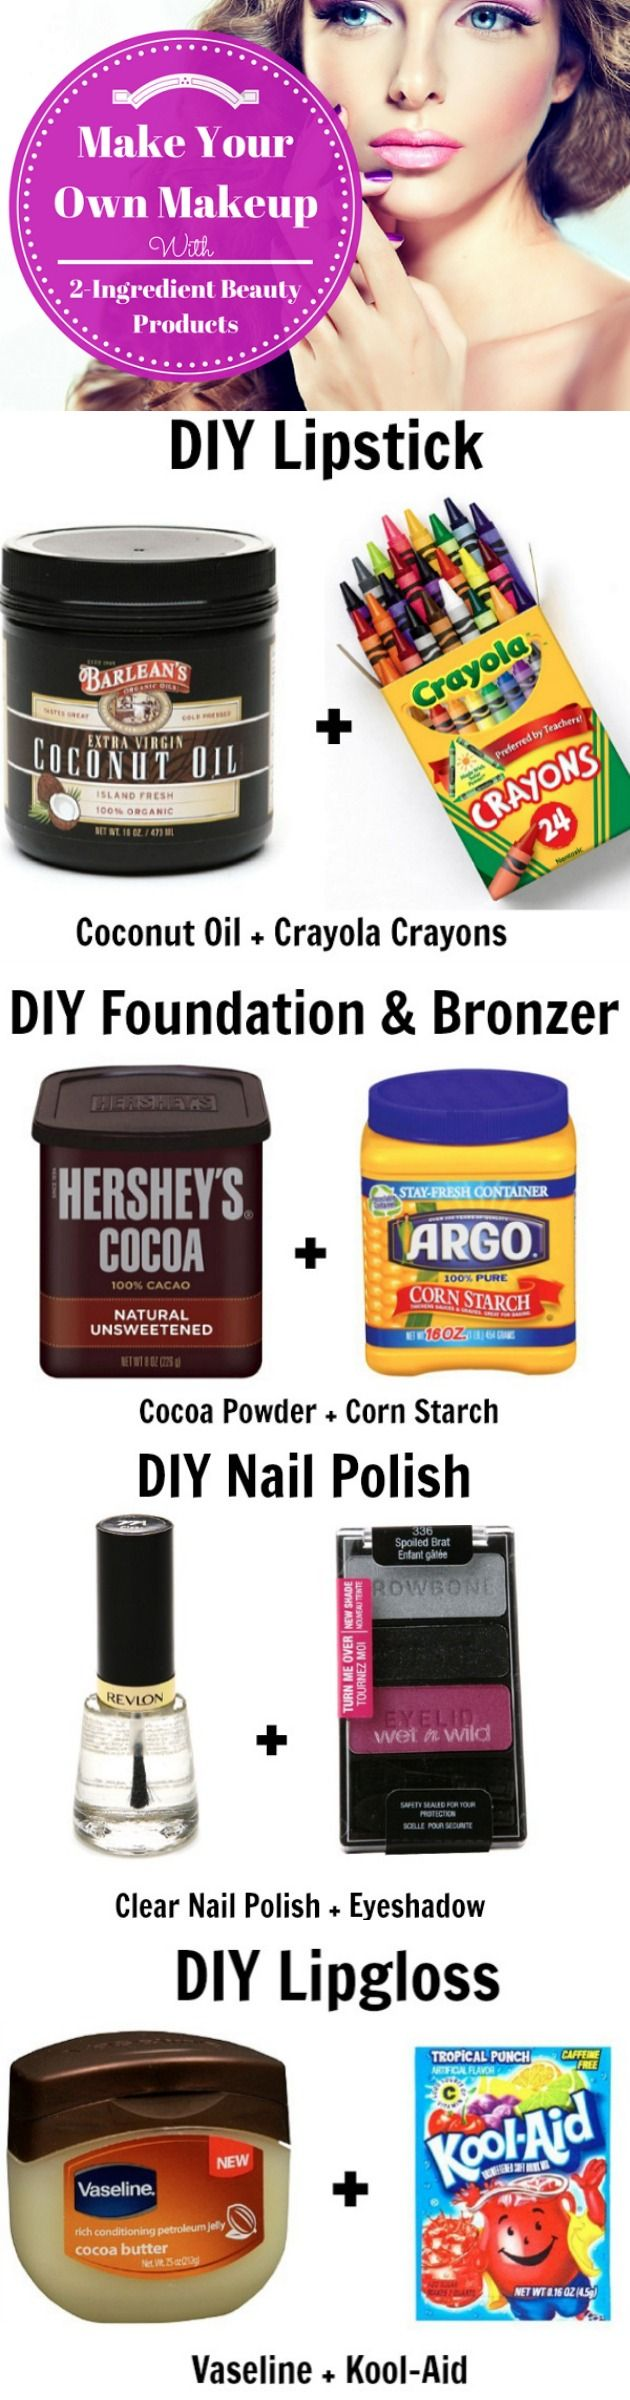 Make Your Own Makeup with only two ingredients!: